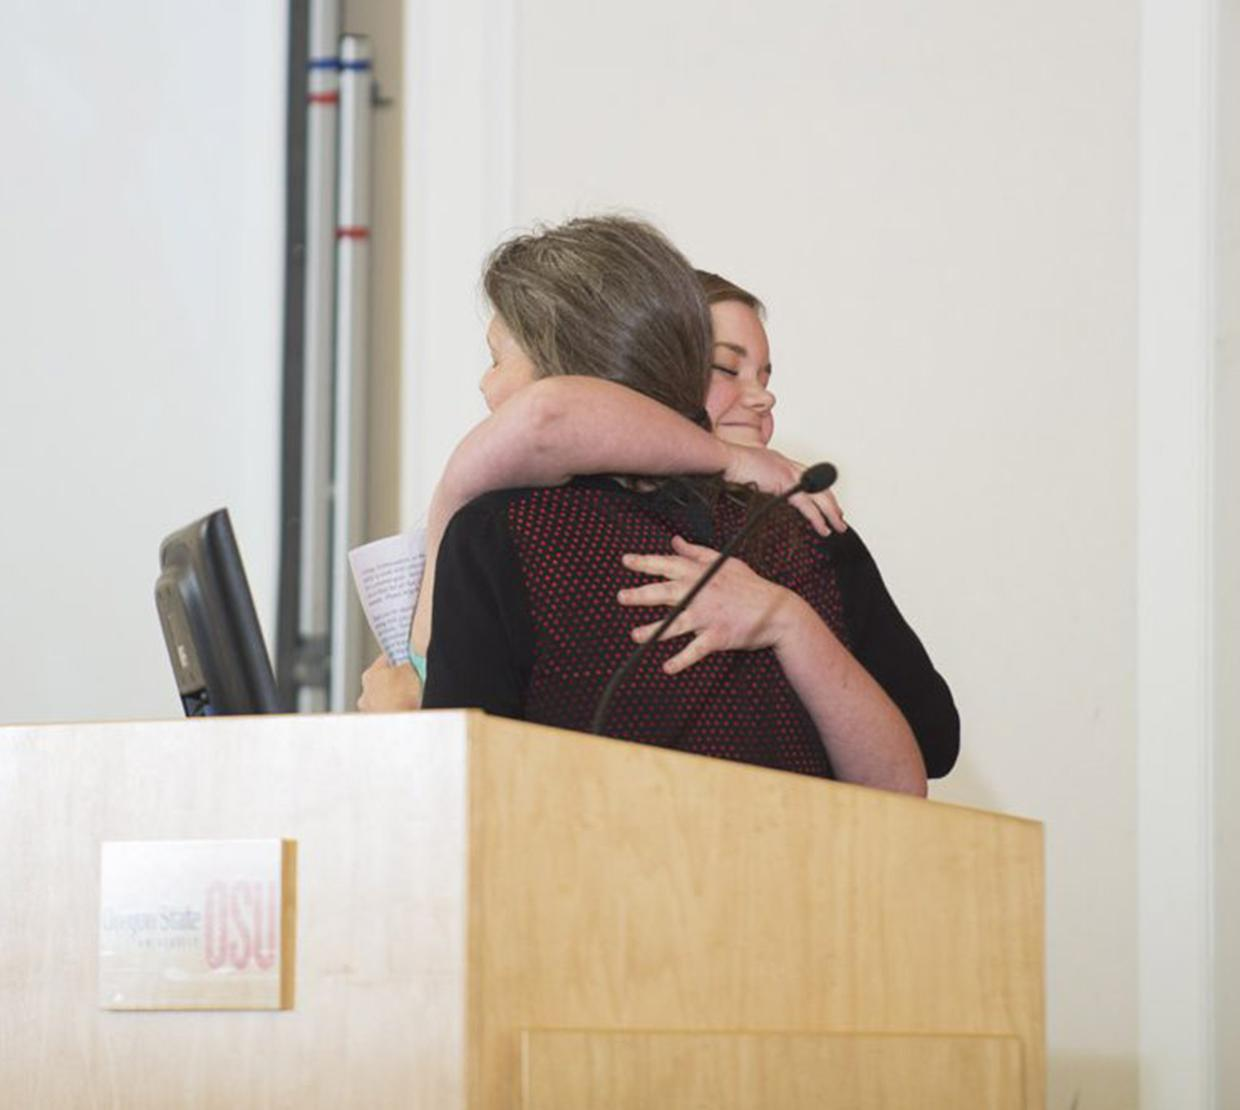 Two women hugging each other behind podium